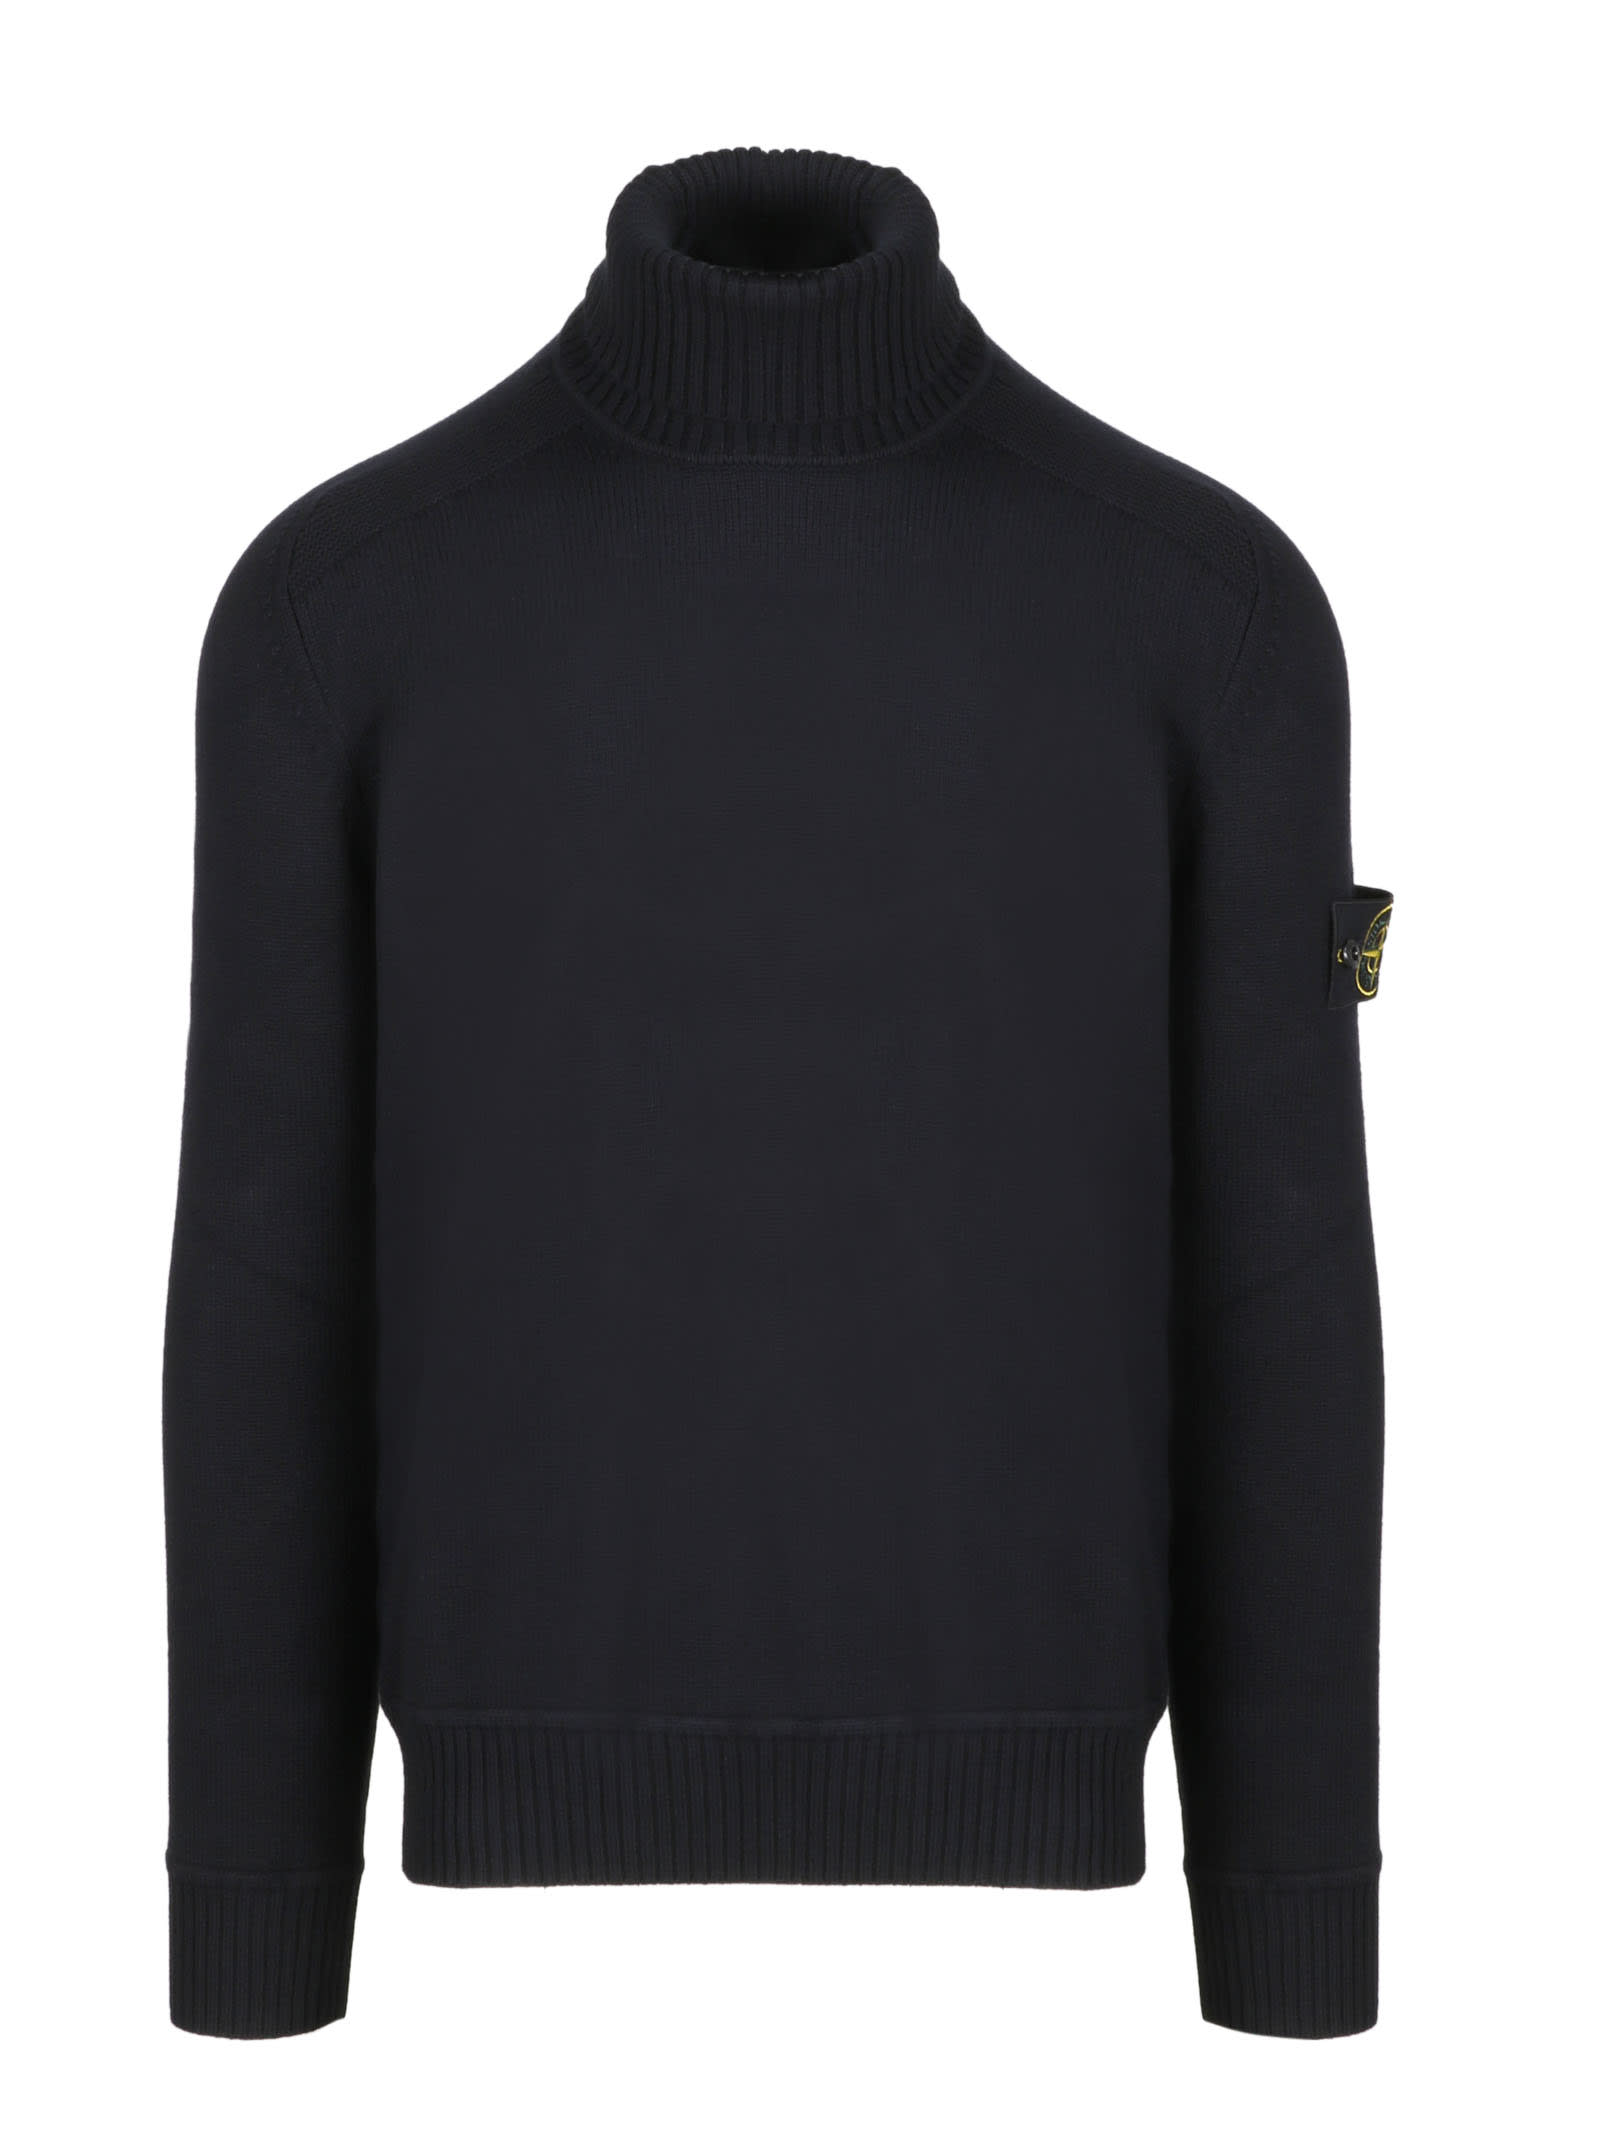 Stone Island Patch Logo Turtleneck